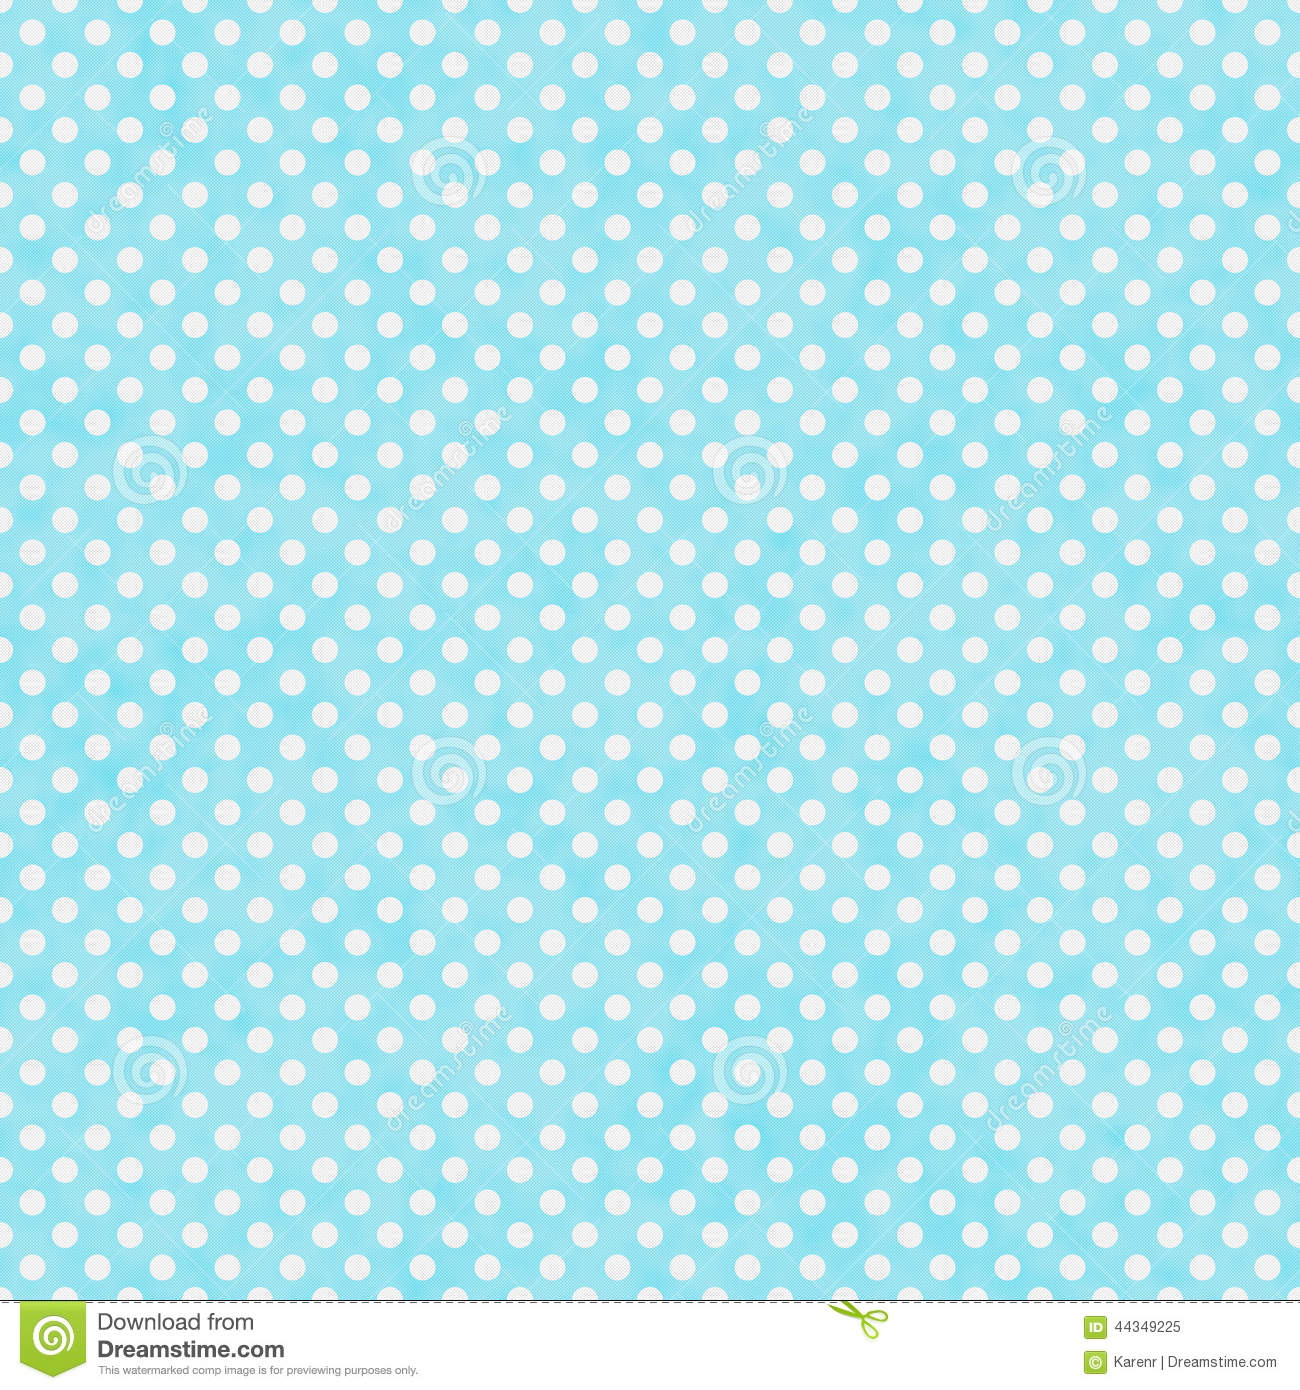 Bright Teal And White Small Polka Dots Pattern Repeat